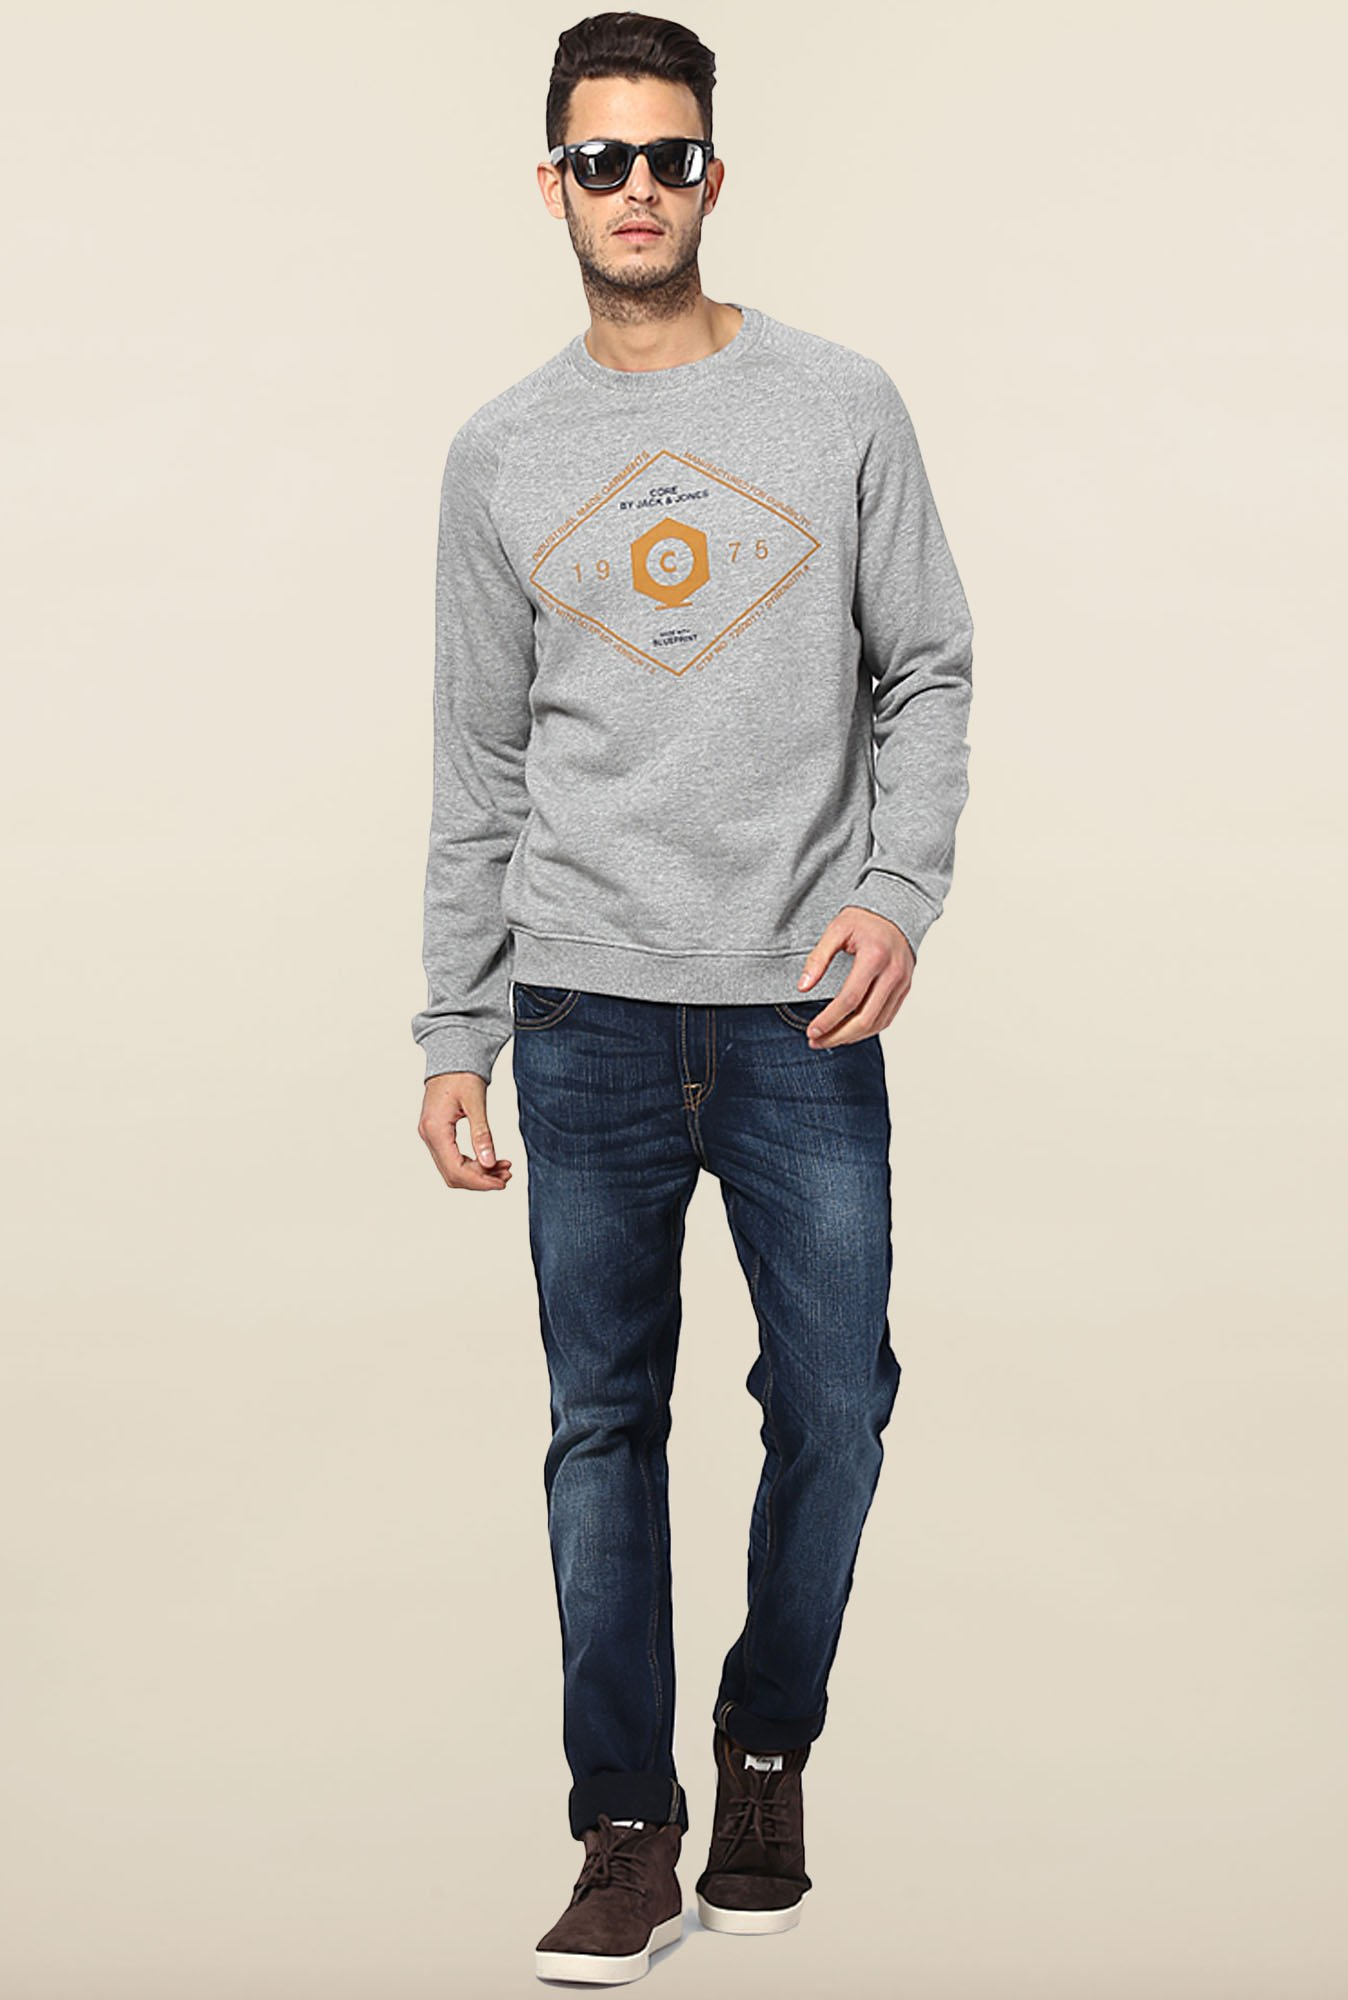 Jack & Jones Light Grey Crew Neck Sweatshirt